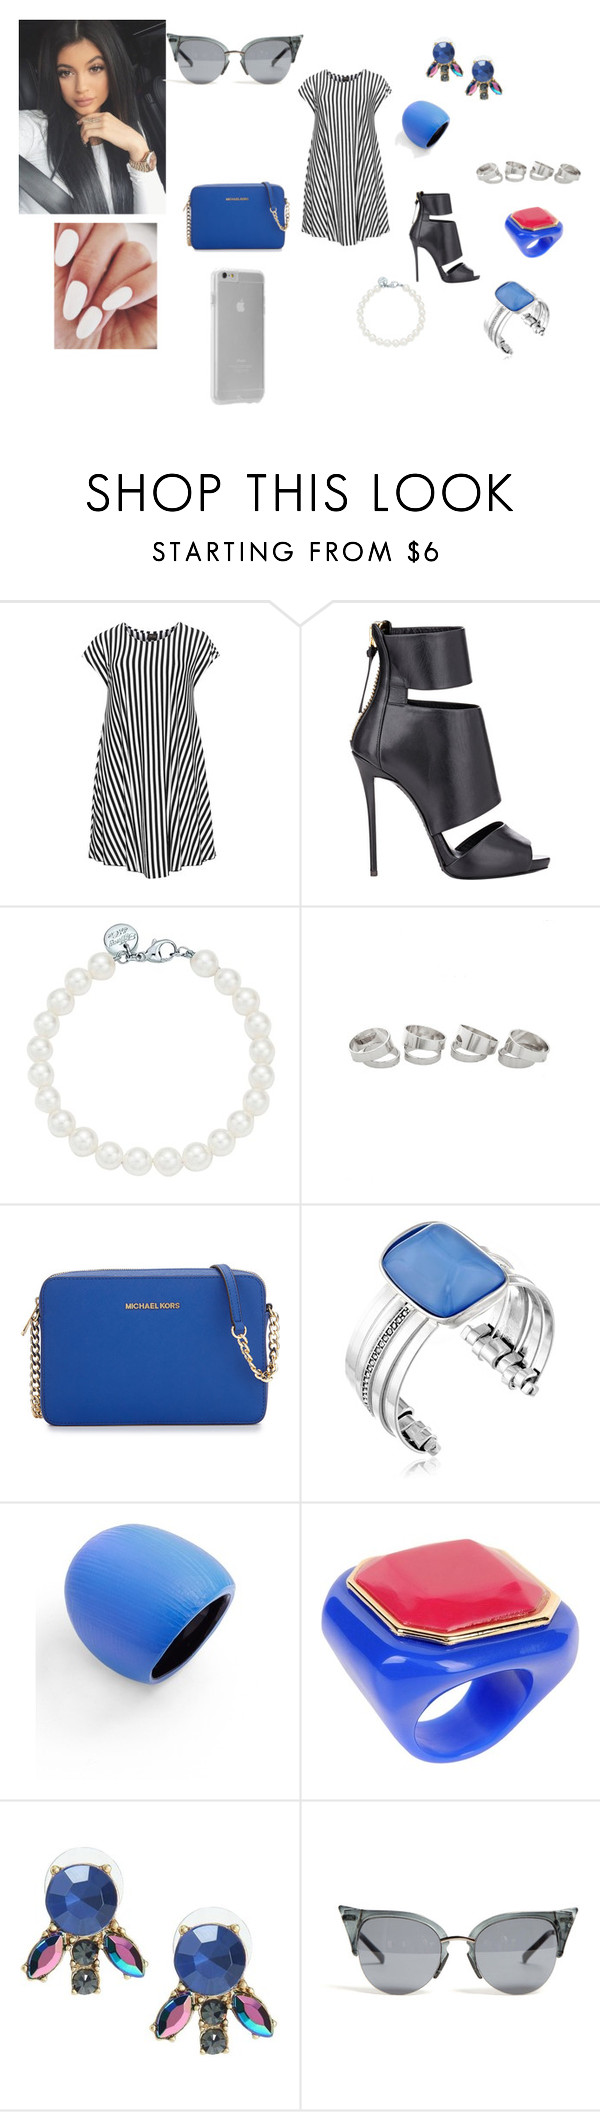 """Sem título #711"" by ritaboo98 ❤ liked on Polyvore featuring Choise, Giuseppe Zanotti, Tiffany & Co., MICHAEL Michael Kors, Kenneth Cole, Alexis Bittar, Giorgio Armani and Case-Mate"